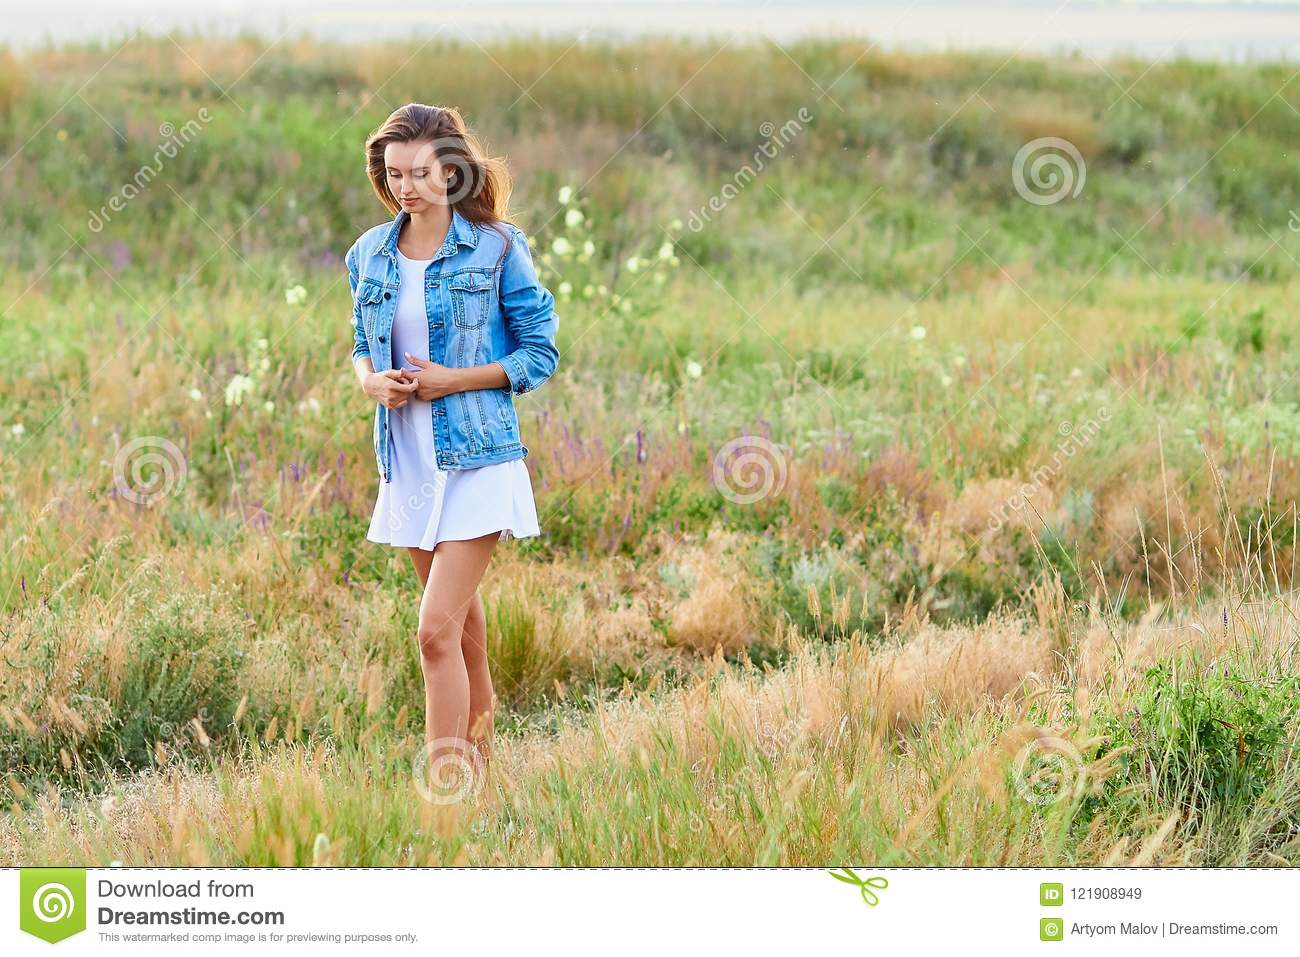 52a12fb876 Happy smiling young girl wearing blue jeans jacket and white dress is  standing in the field